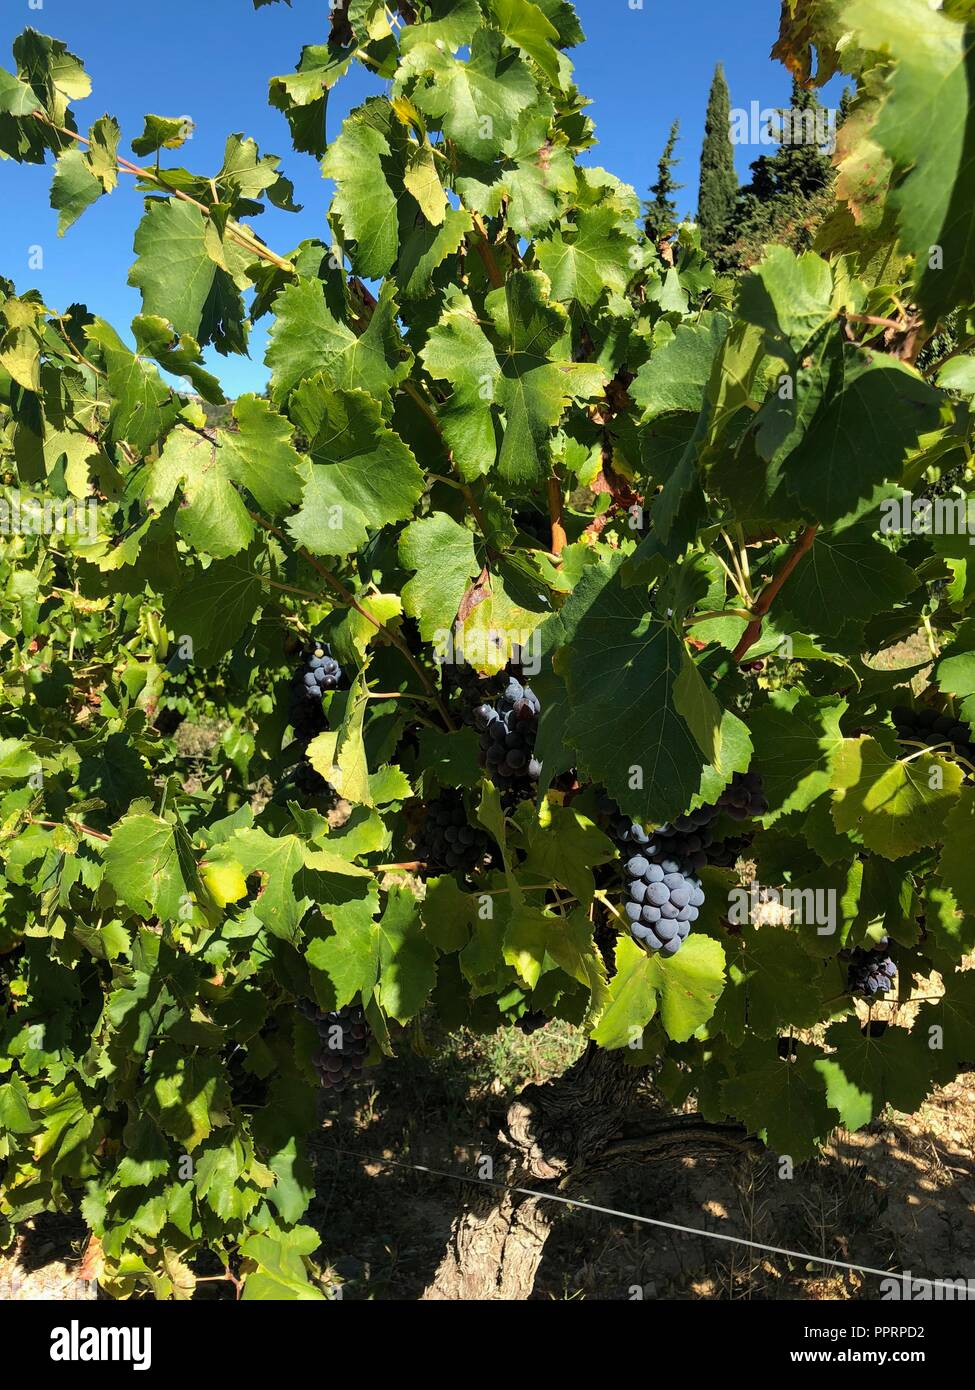 Vineyards in Provence, France in late summer before harvest - Stock Image